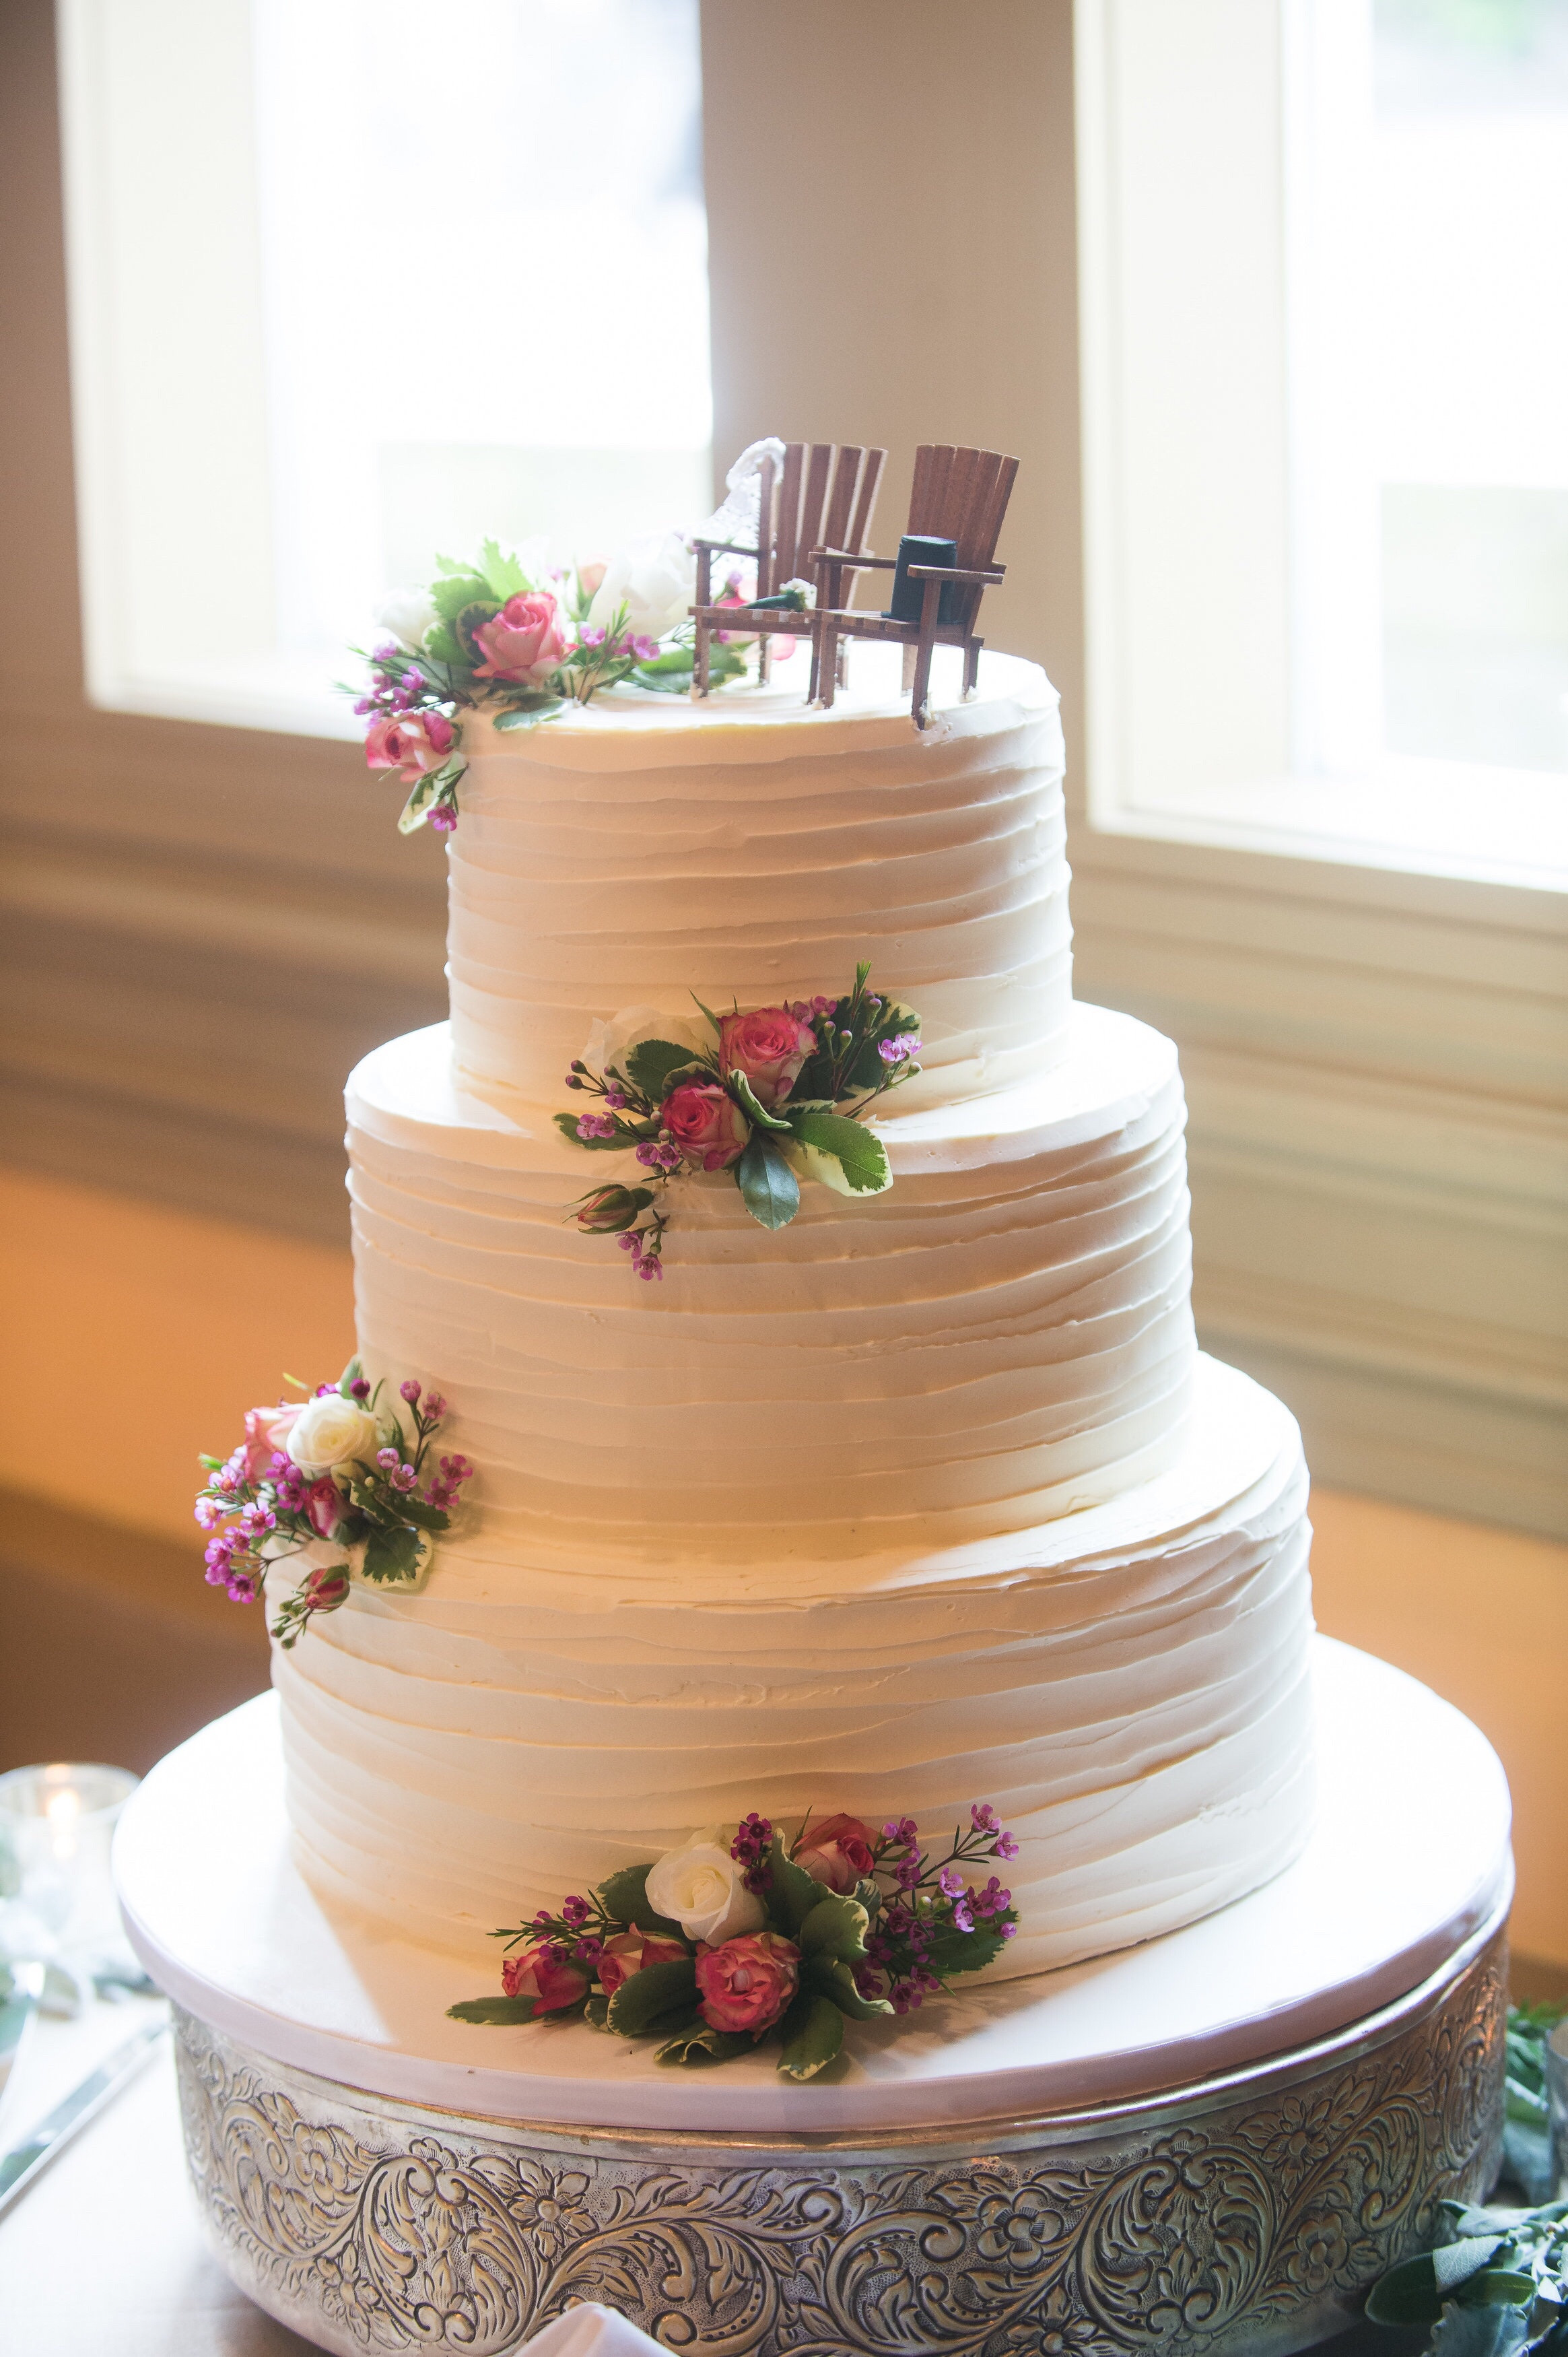 Wedding Cakes Design Ideas  The 15 mon Cake Designs Names So You Know What to Ask For